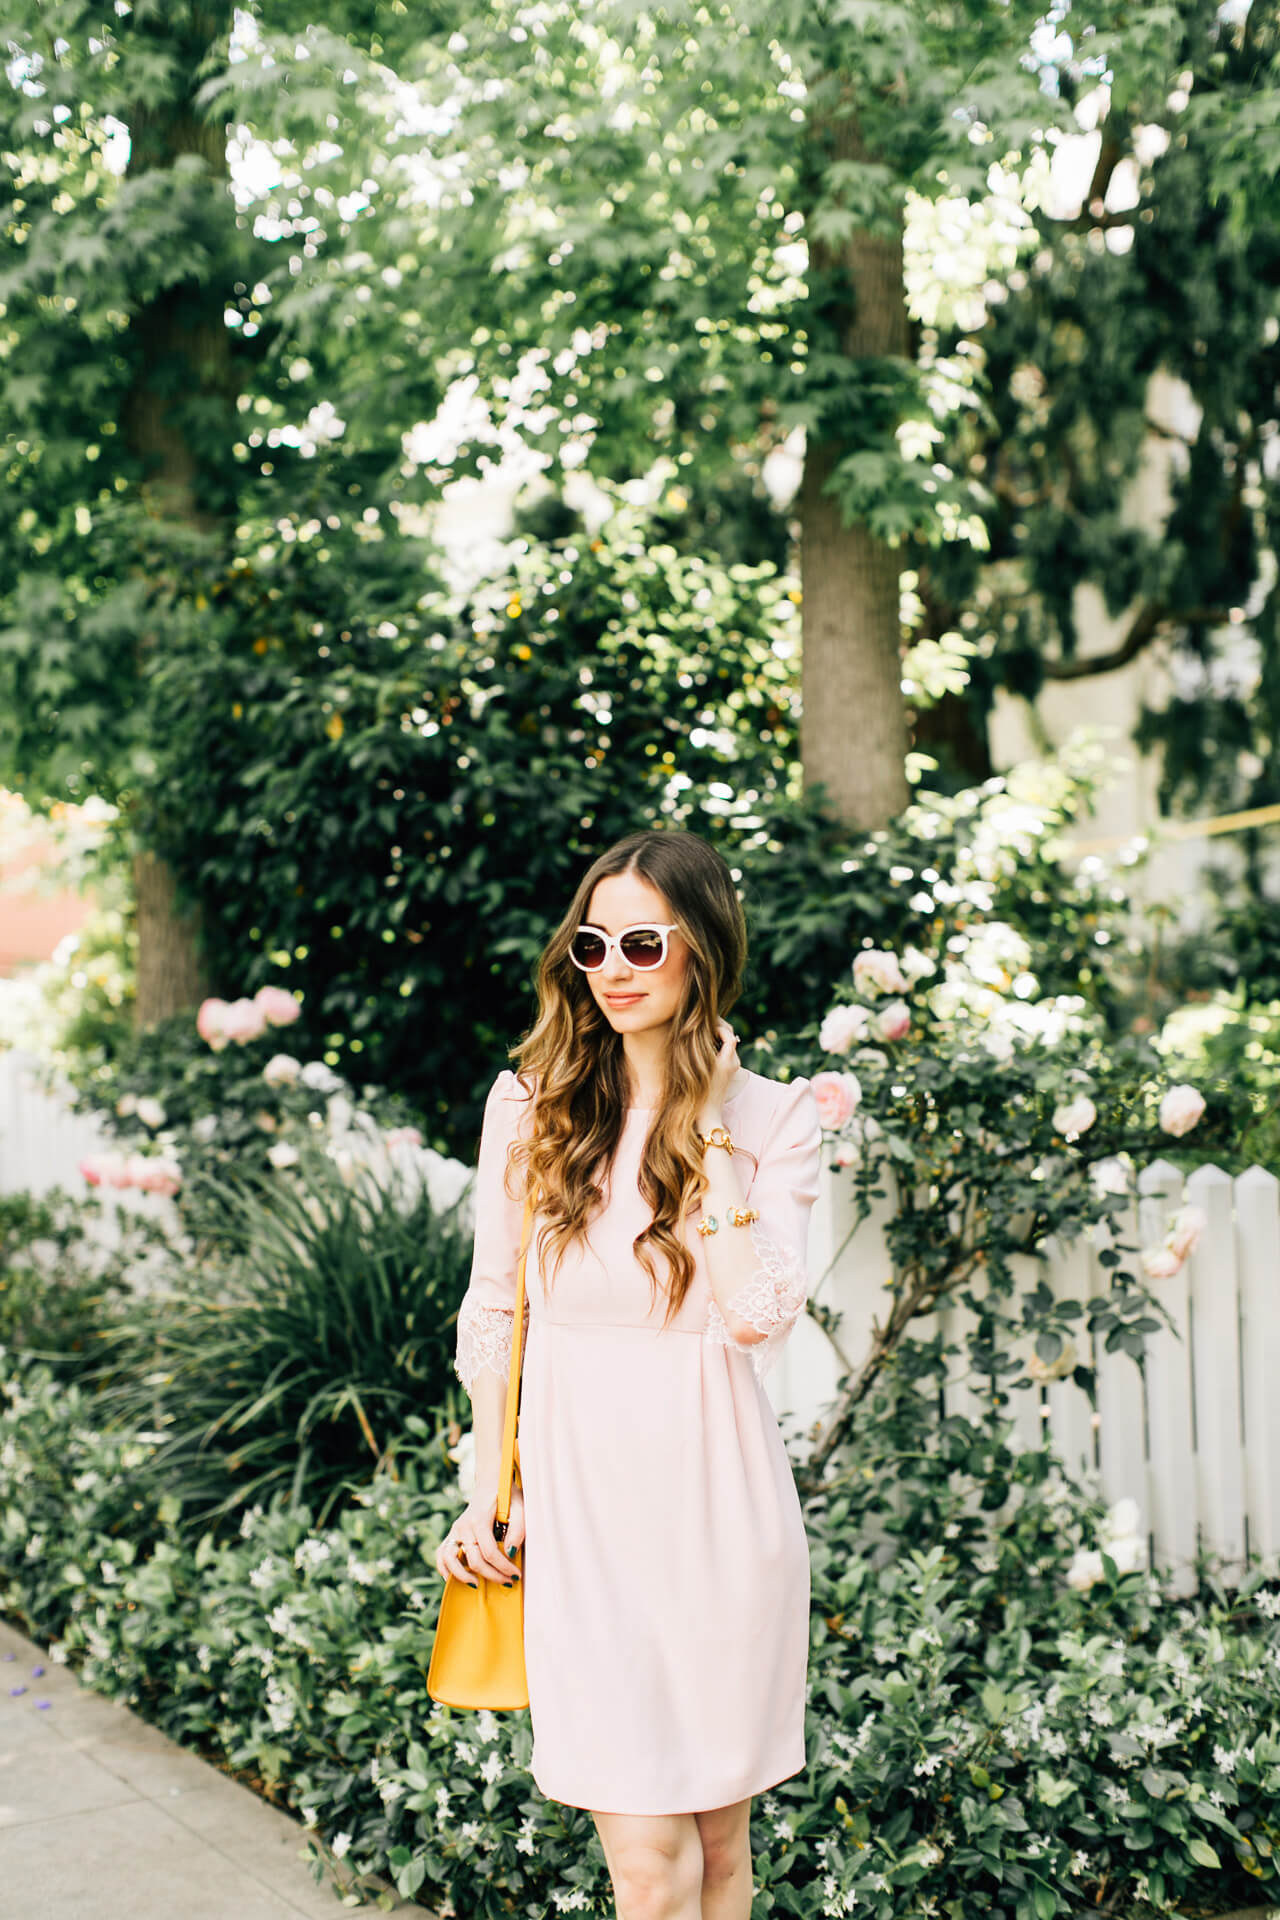 pink lace dress with white sunglasses - feminine outfit inspiration from LA fashion blogger M Loves M